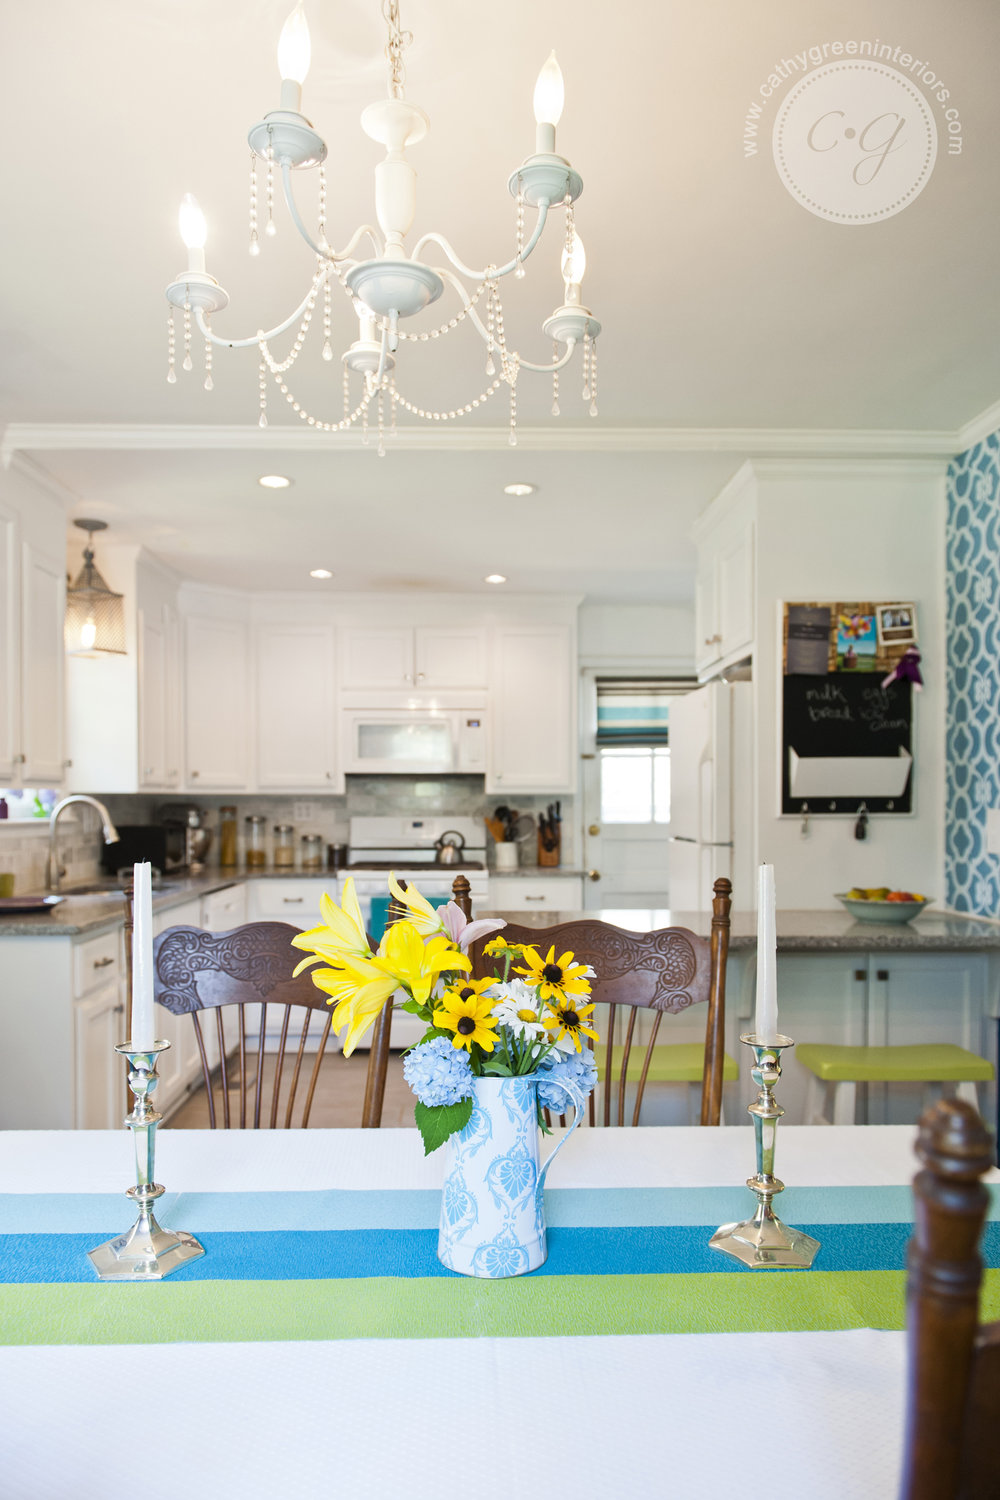 white kitchen from dining room.jpg